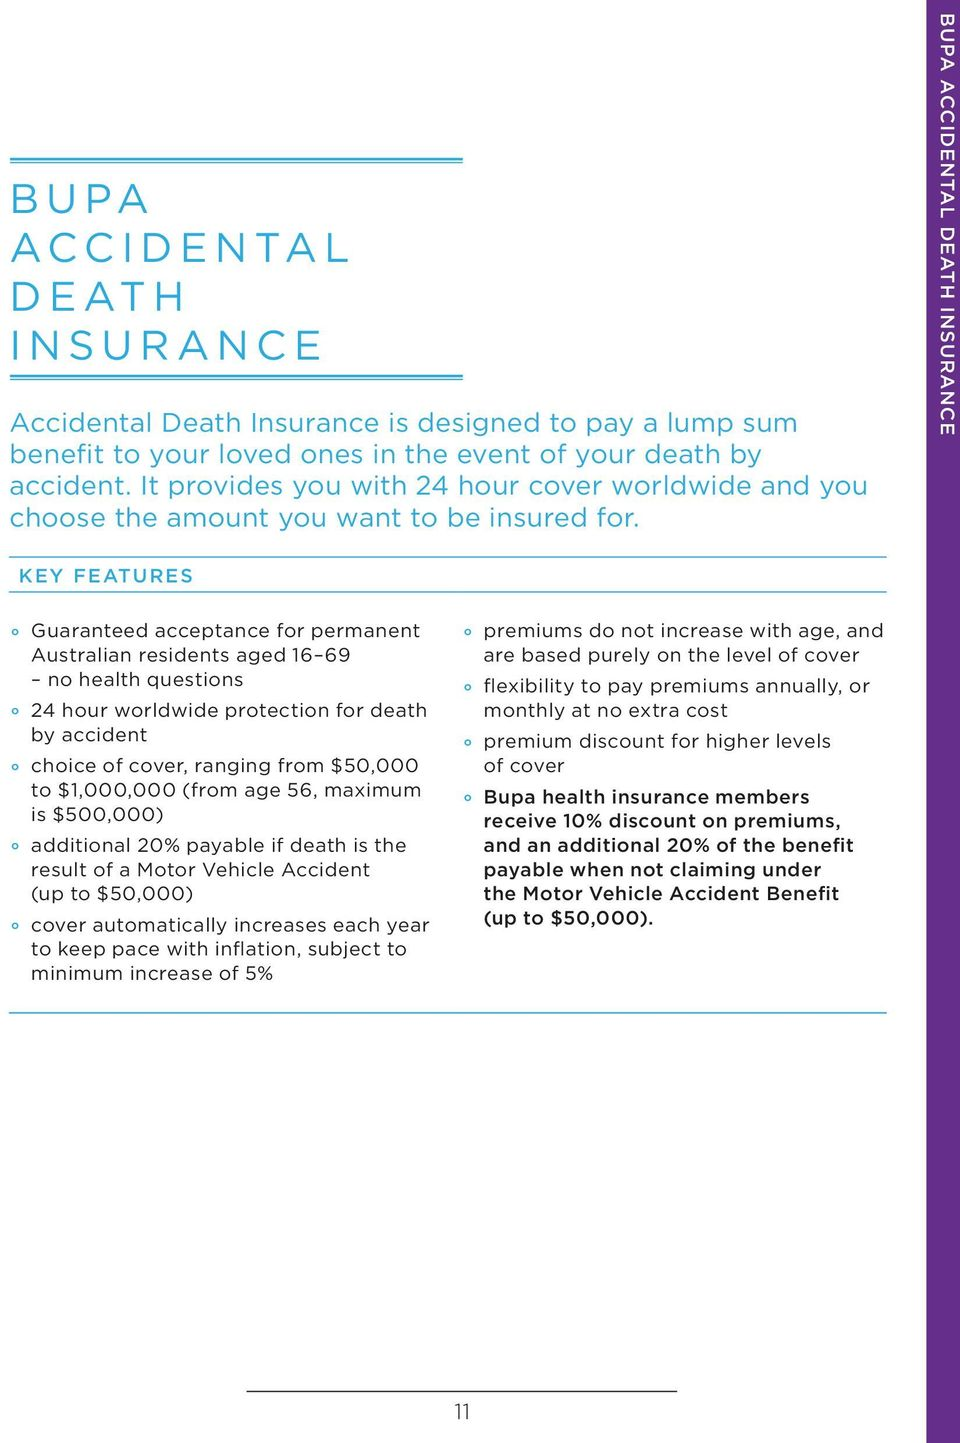 BUPA ACCIDENTAL DEATH INSURANCE KEY FEATURES Guaranteed acceptance for permanent Australian residents aged 16 69 no health questions 24 hour worldwide protection for death by accident choice of